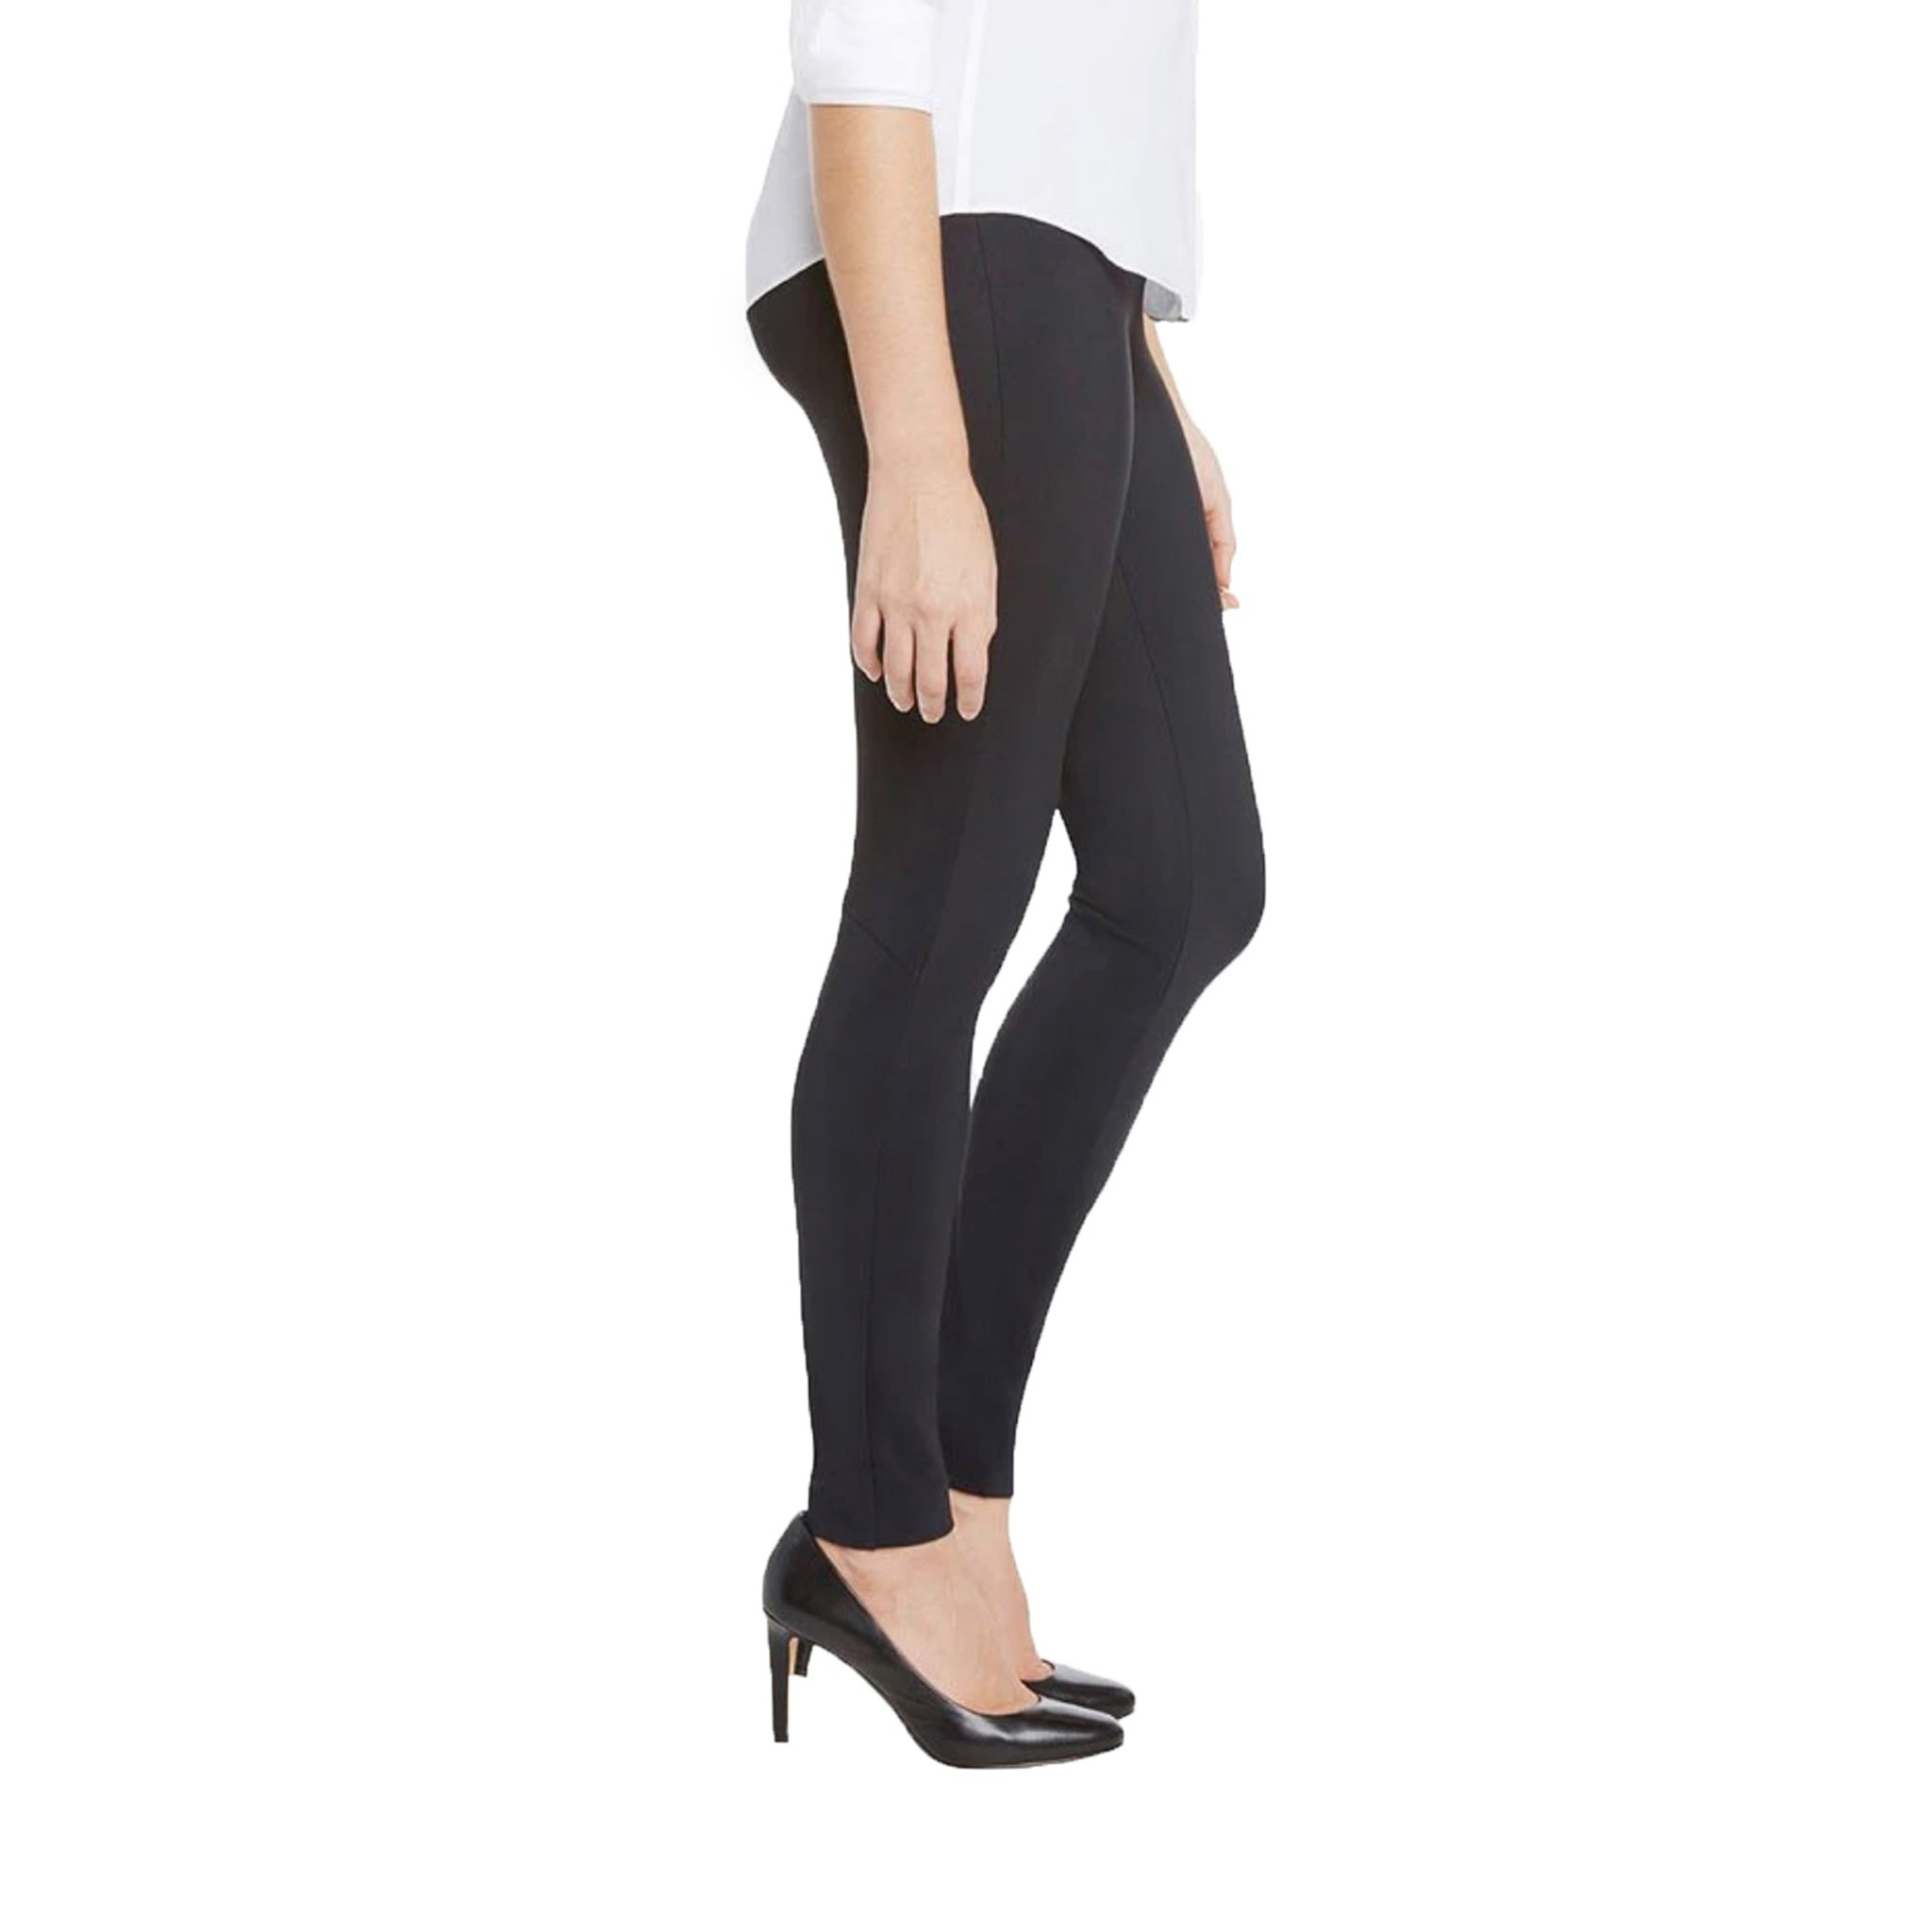 The Stacey, a perfect classic Black Legging for every occasion, by Ameliora, Side view.